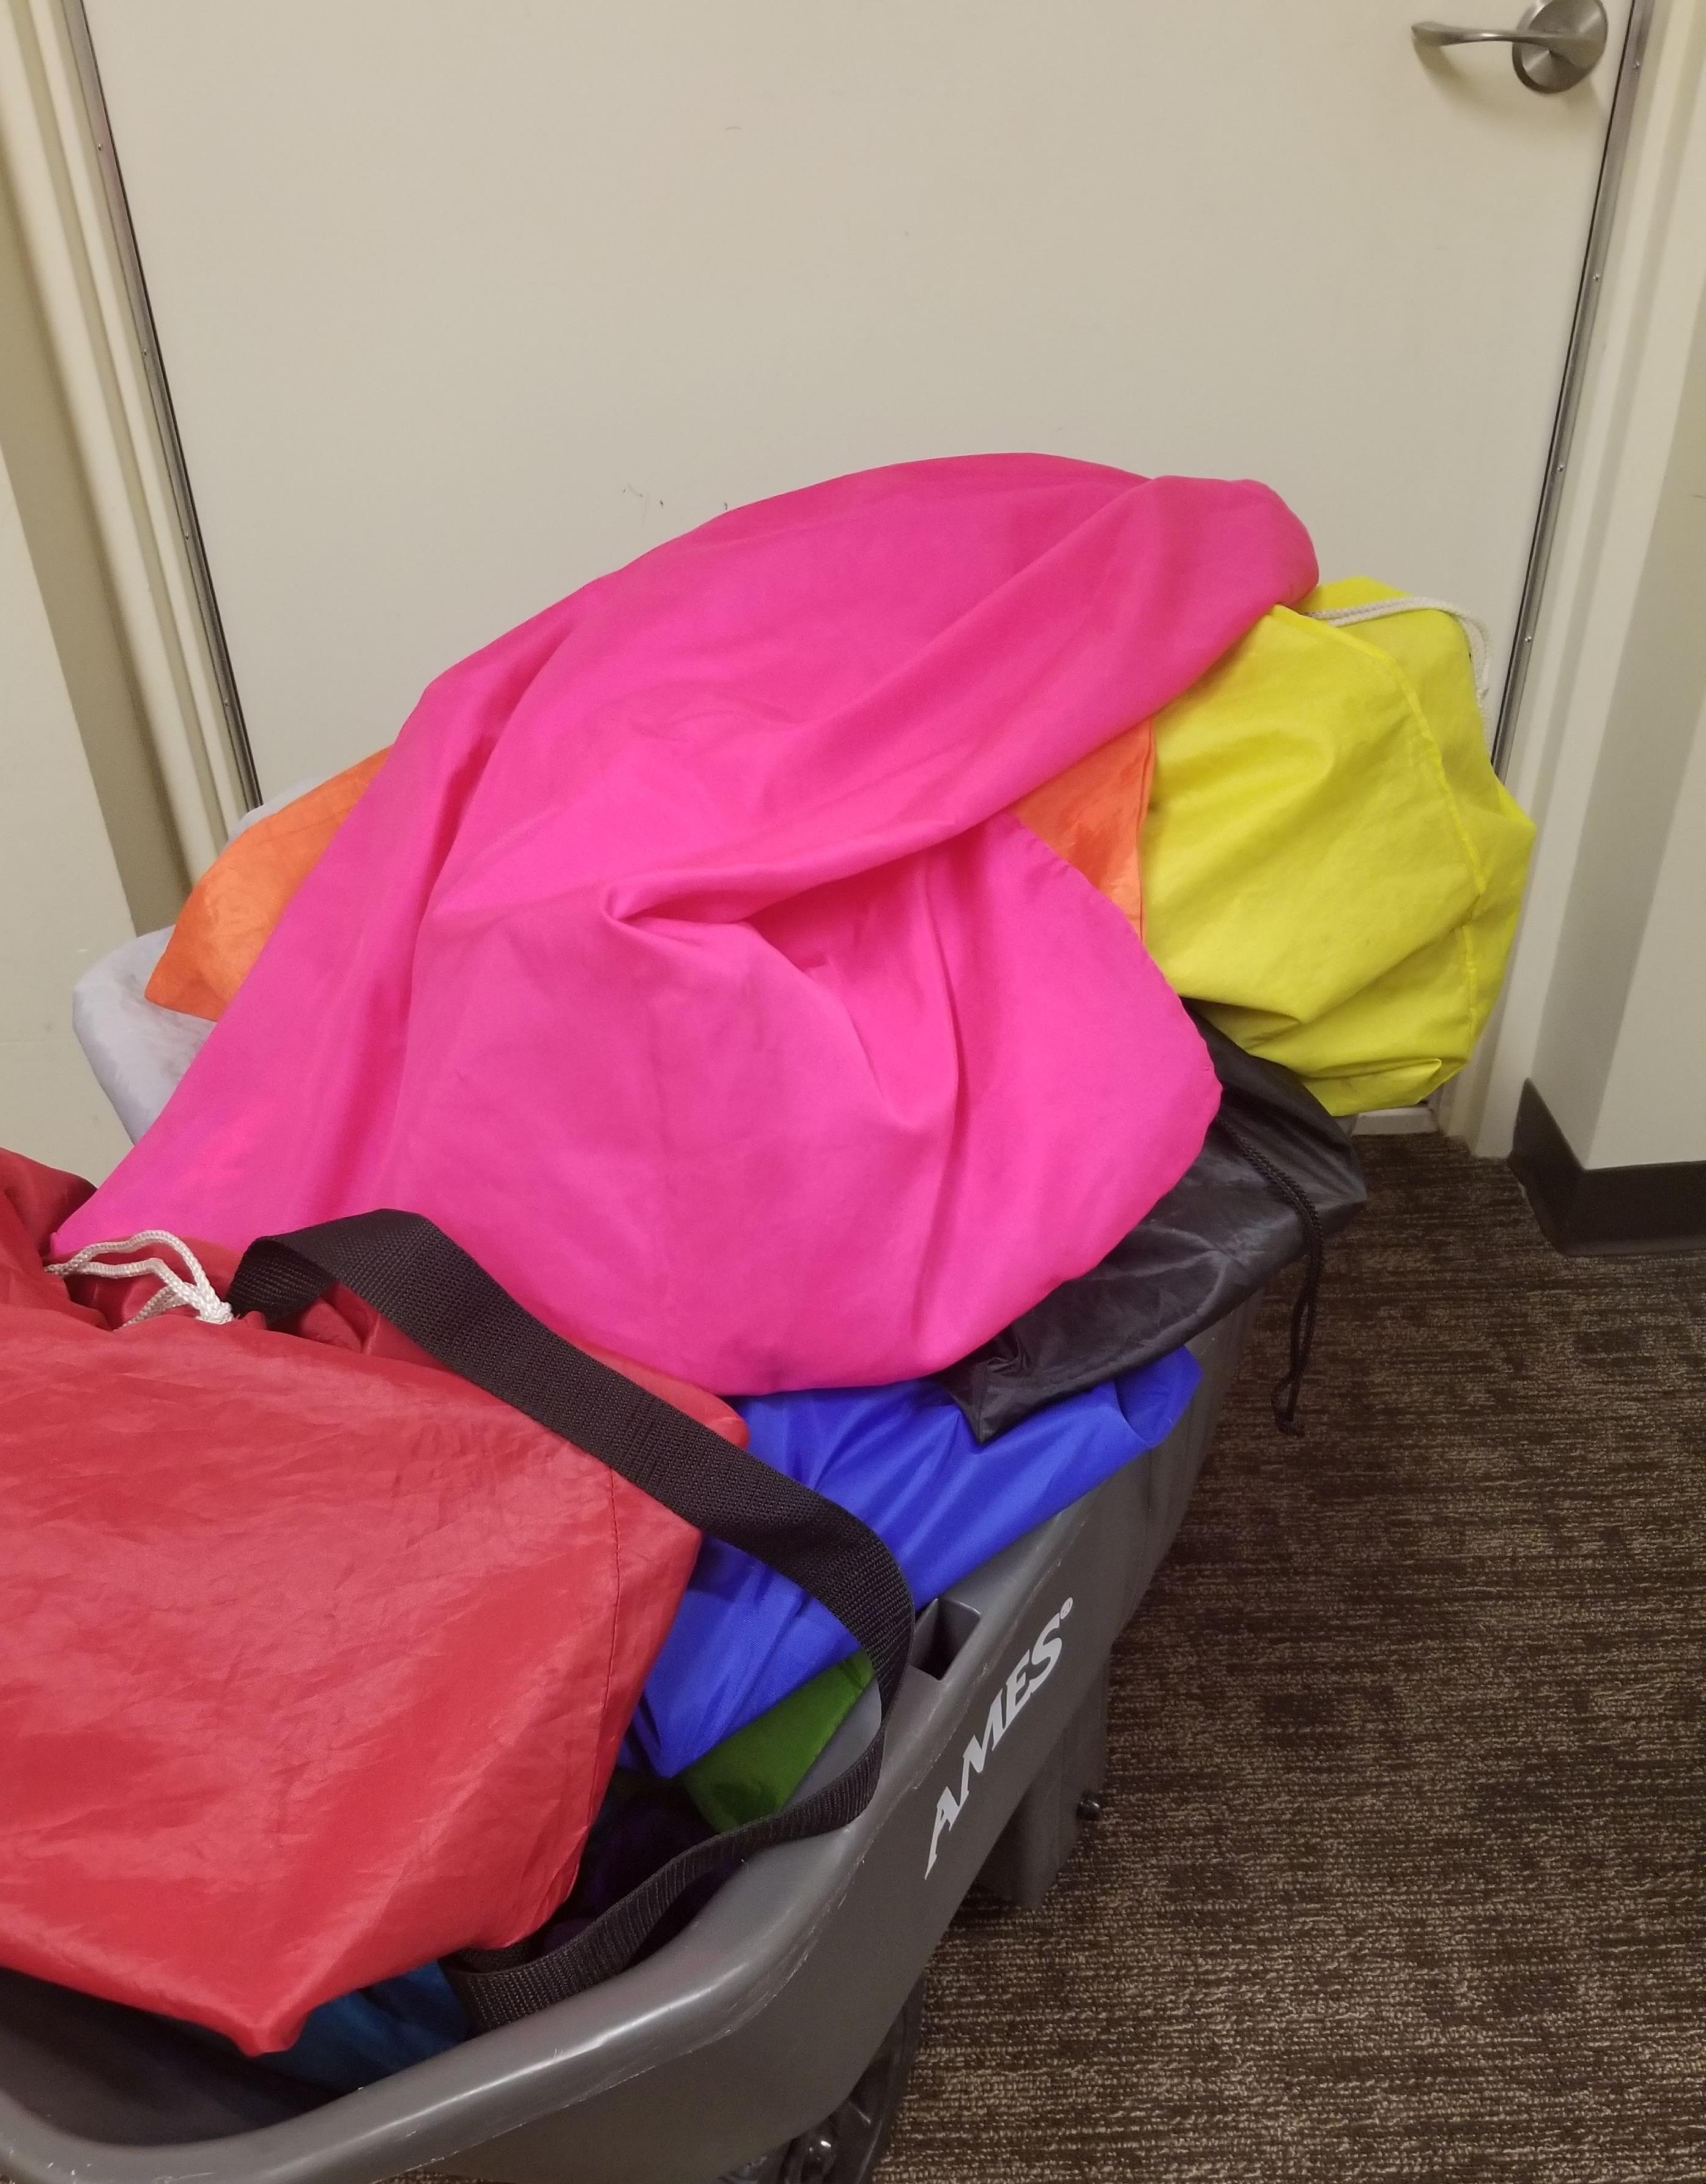 gray cart heaped with brightly colored cargo bags parked in front of a an exit door.